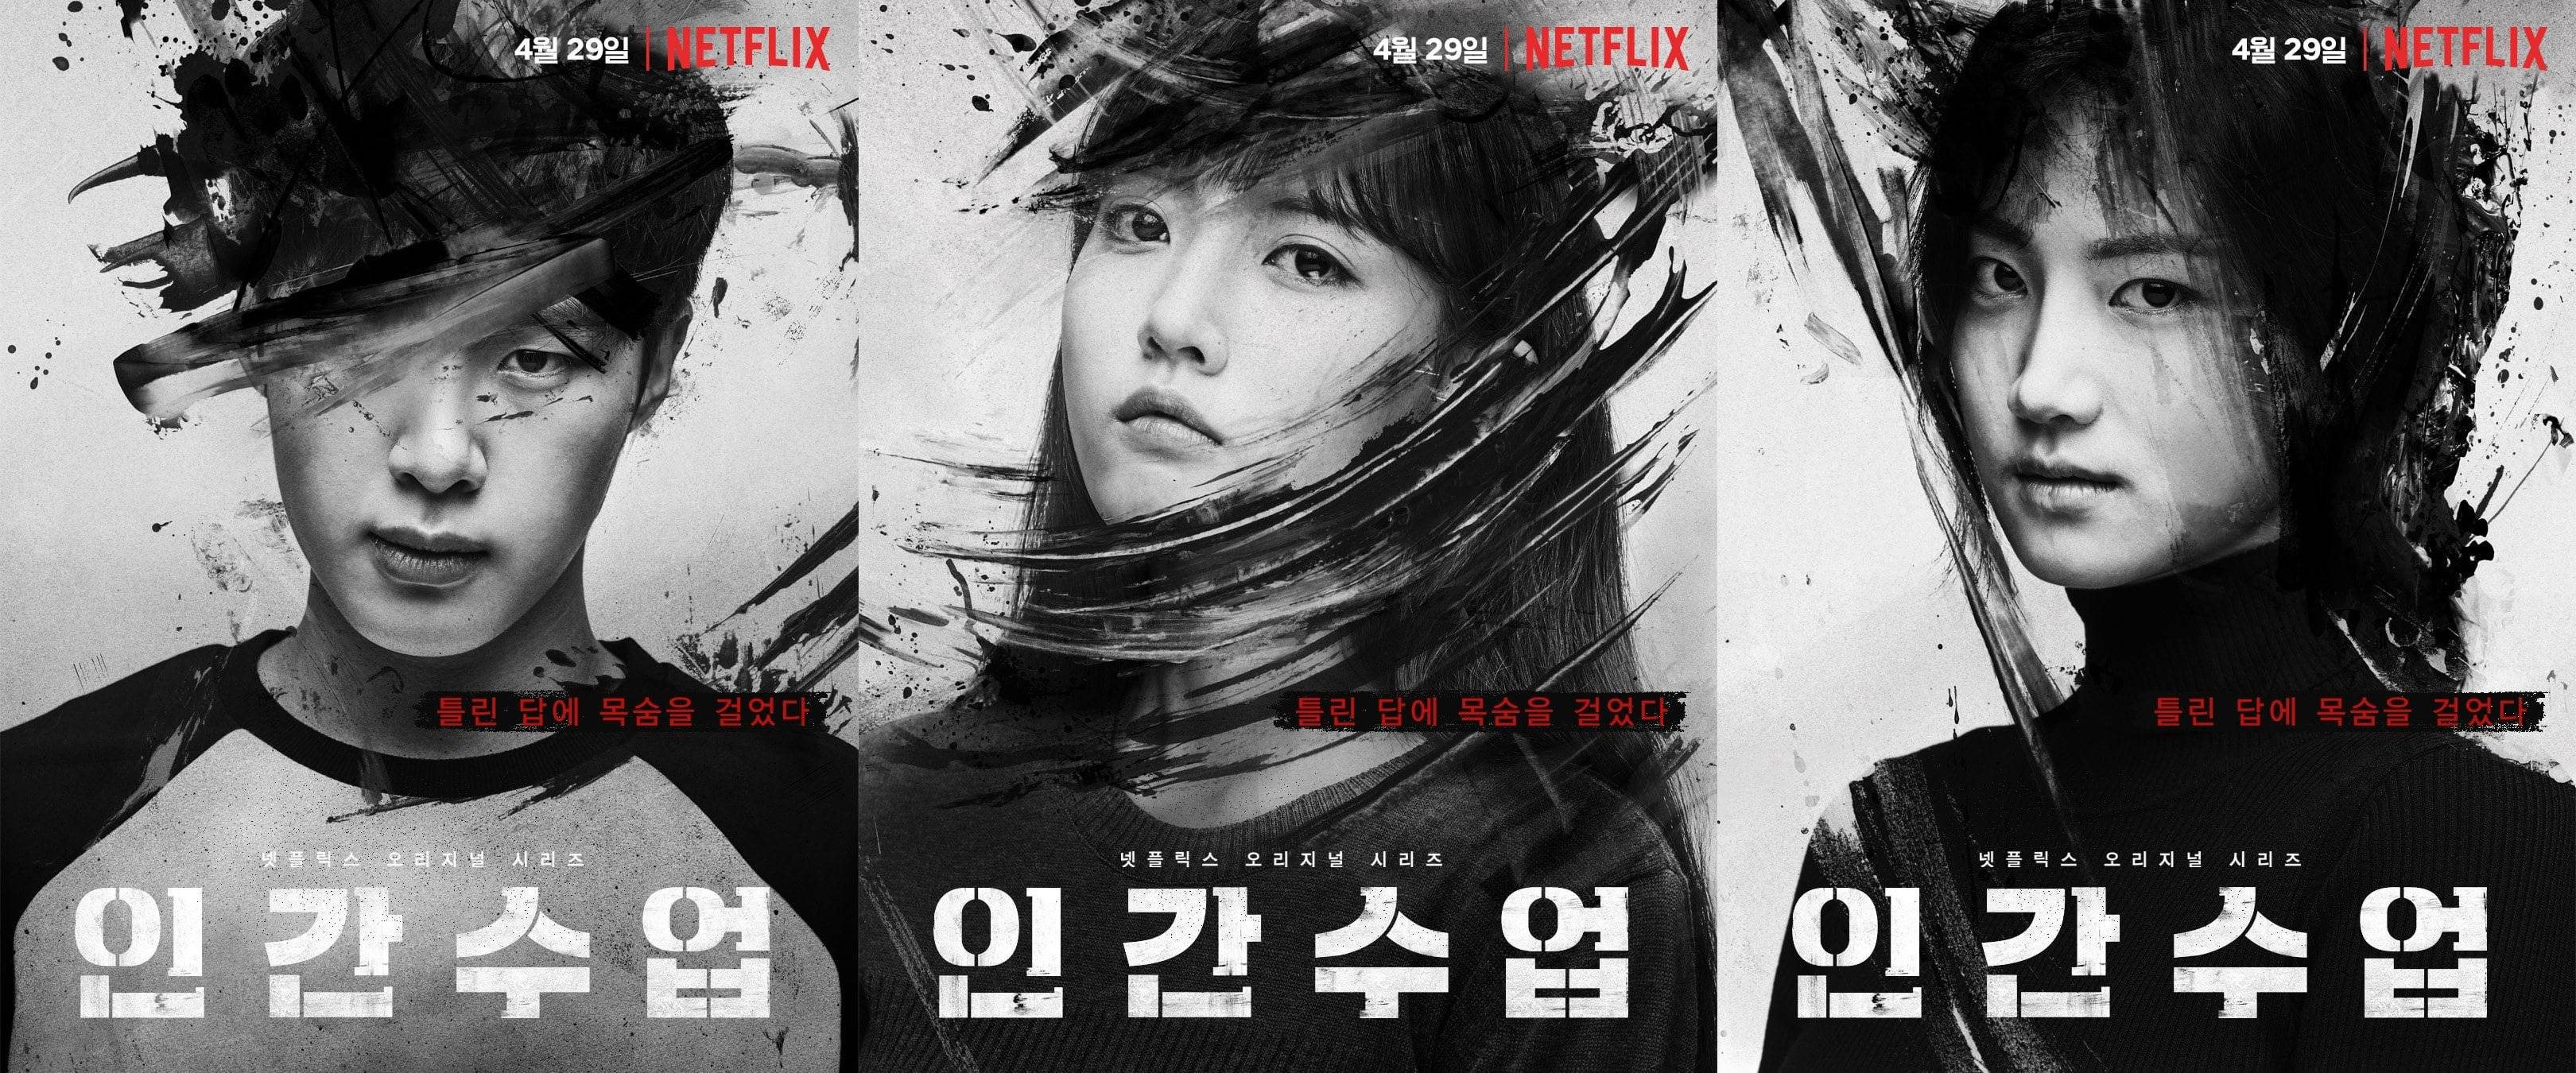 Photos] Character Posters Added for the Upcoming Korean Drama ...